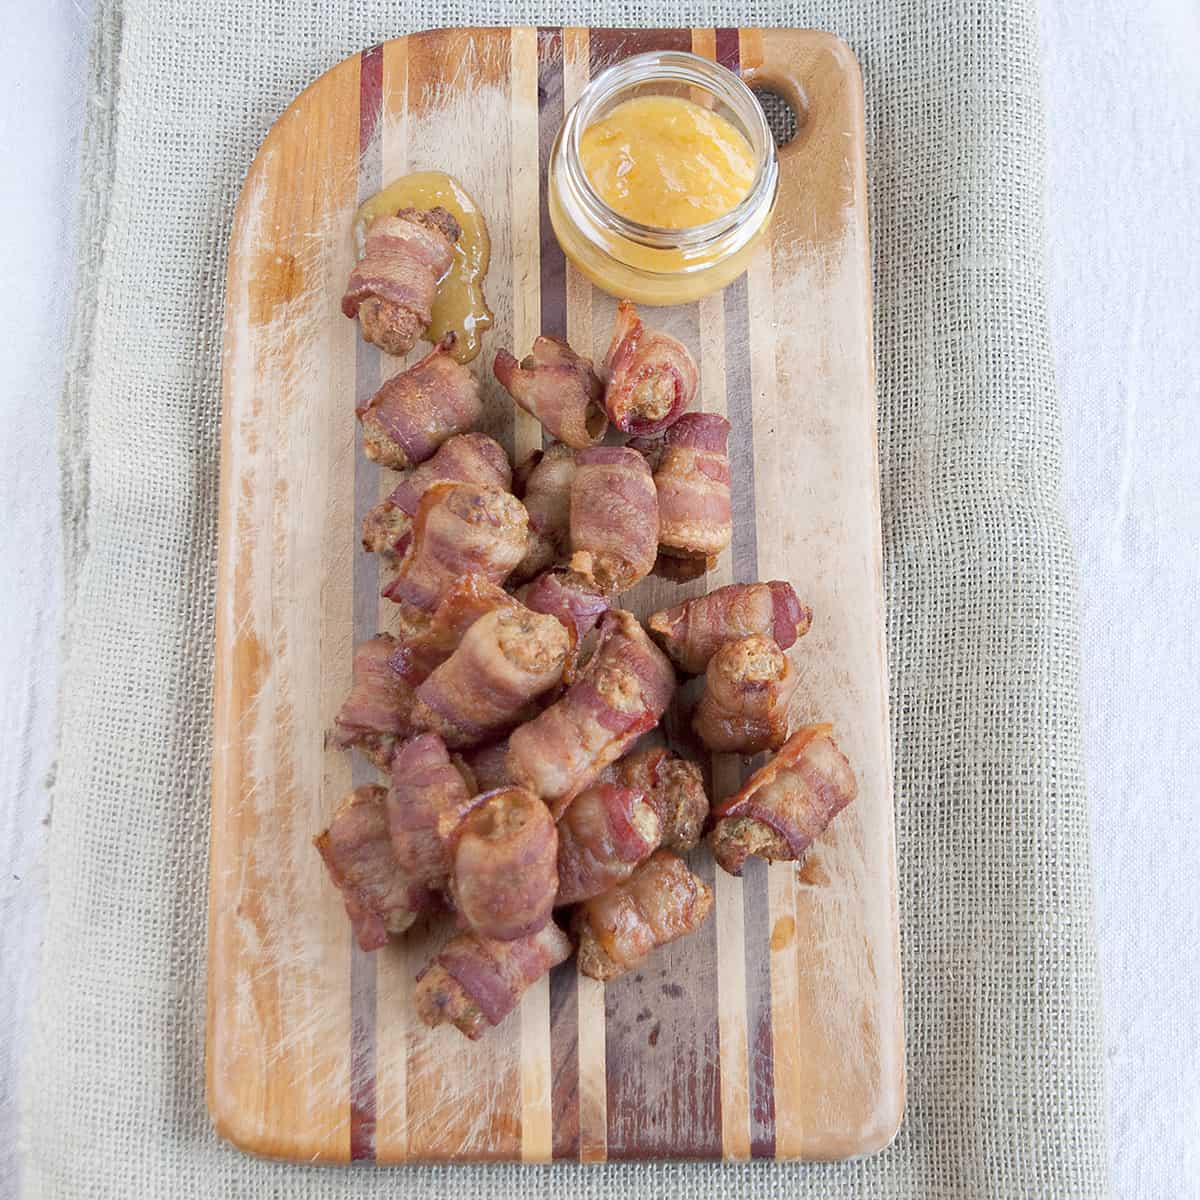 Bacon Wrapped Sausage Balls - Spicy, herby, cheesy sausage balls wrapped in bacon and served with a peach-Dijon dipping sauce. From @NevrEnoughThyme https://www.lanascooking.com/bacon-wrapped-sausage-balls